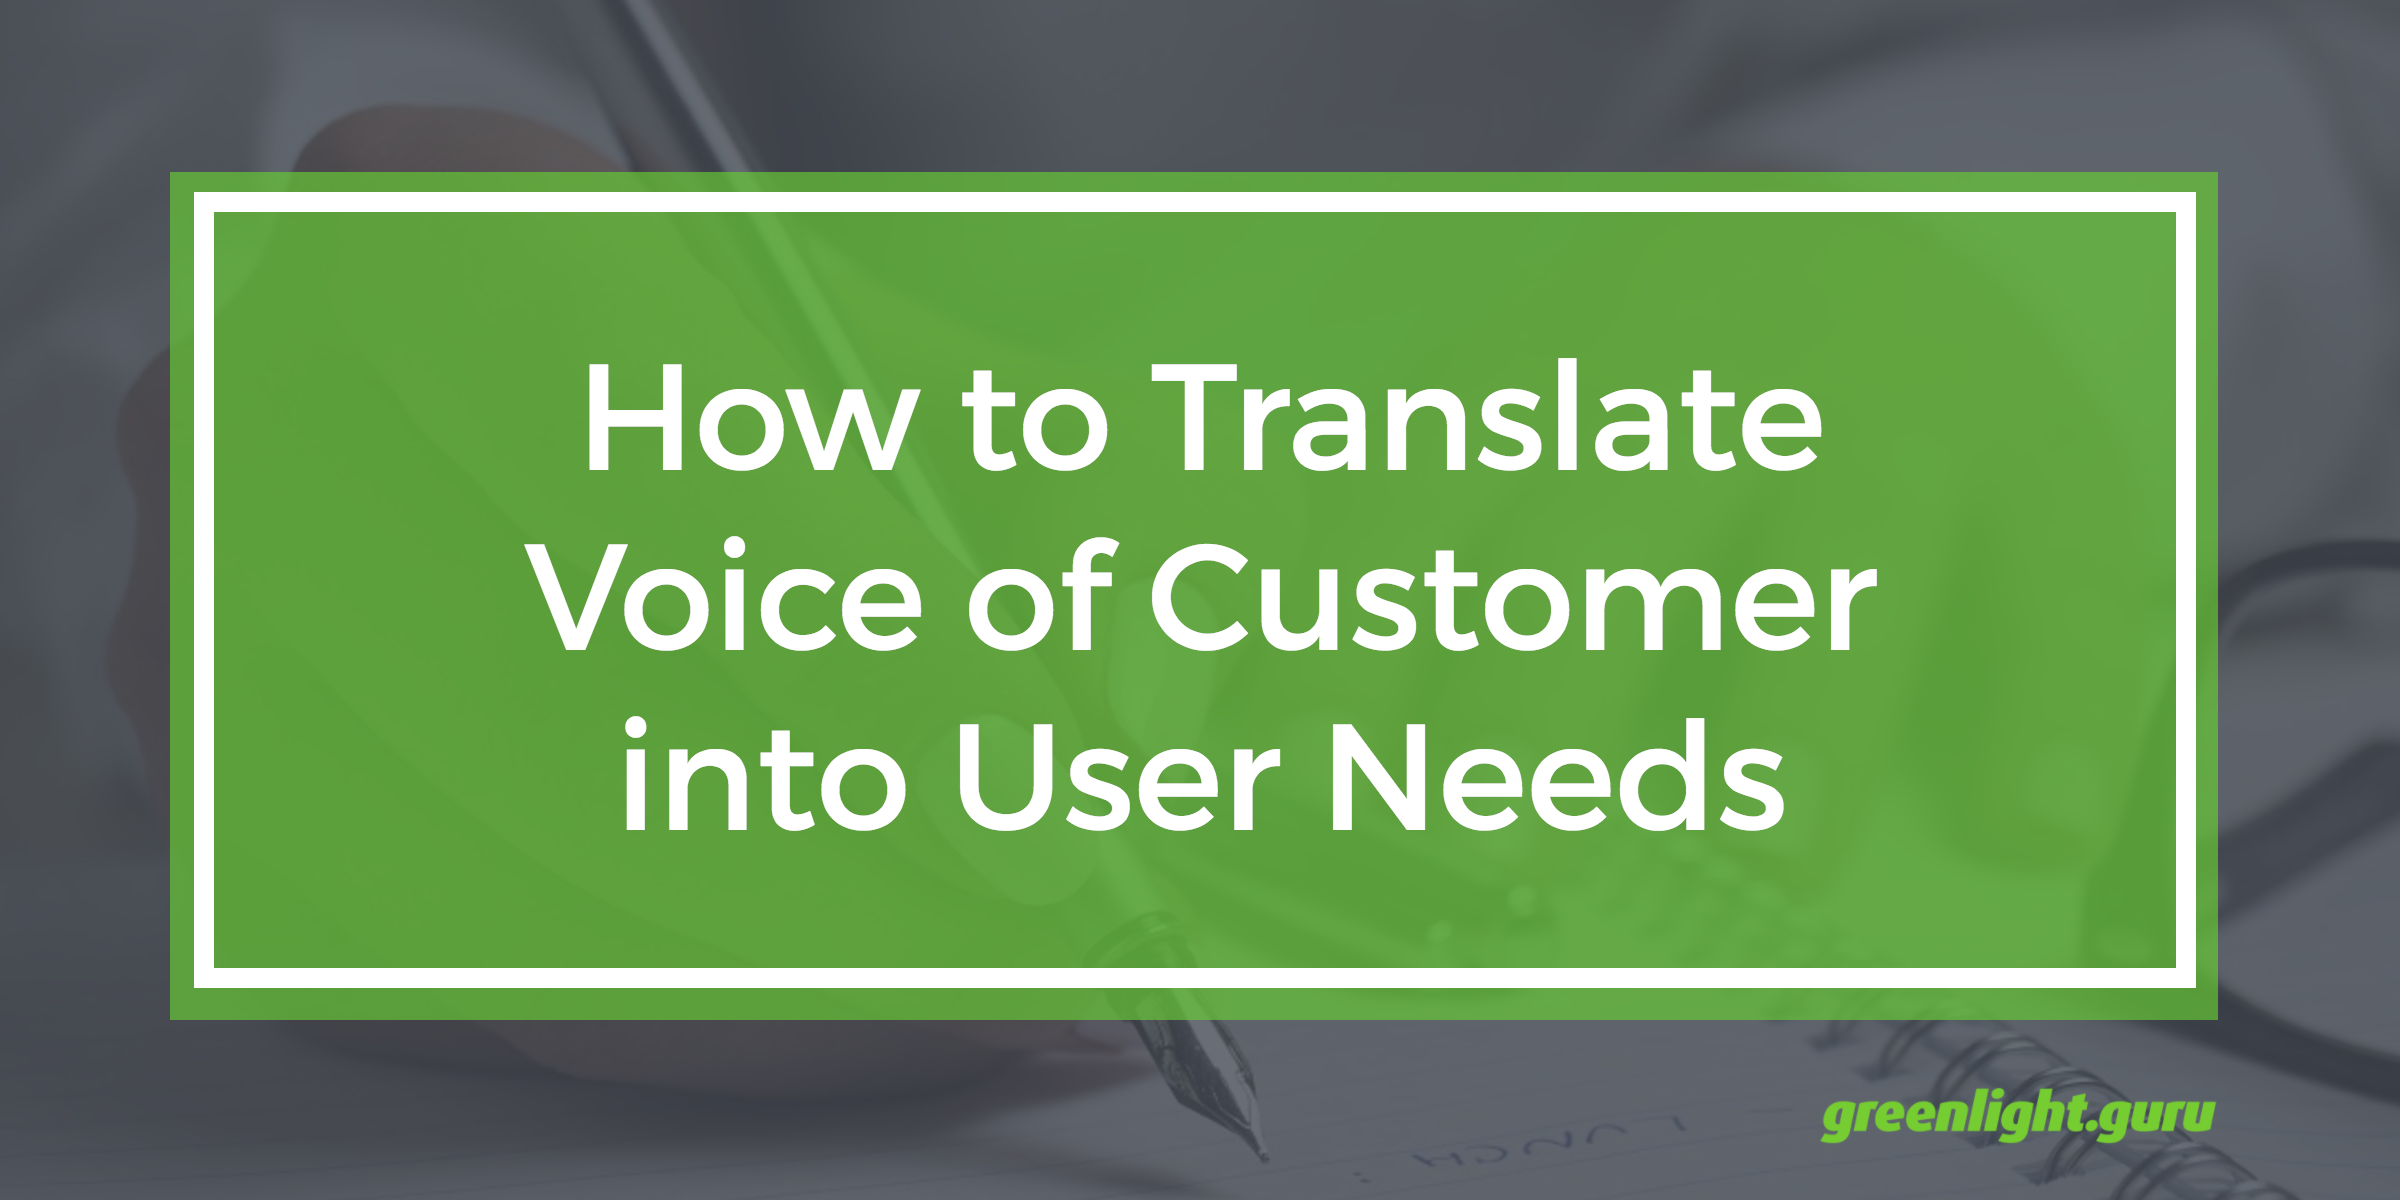 How to Translate Voice of Customer into User Needs - Featured Image